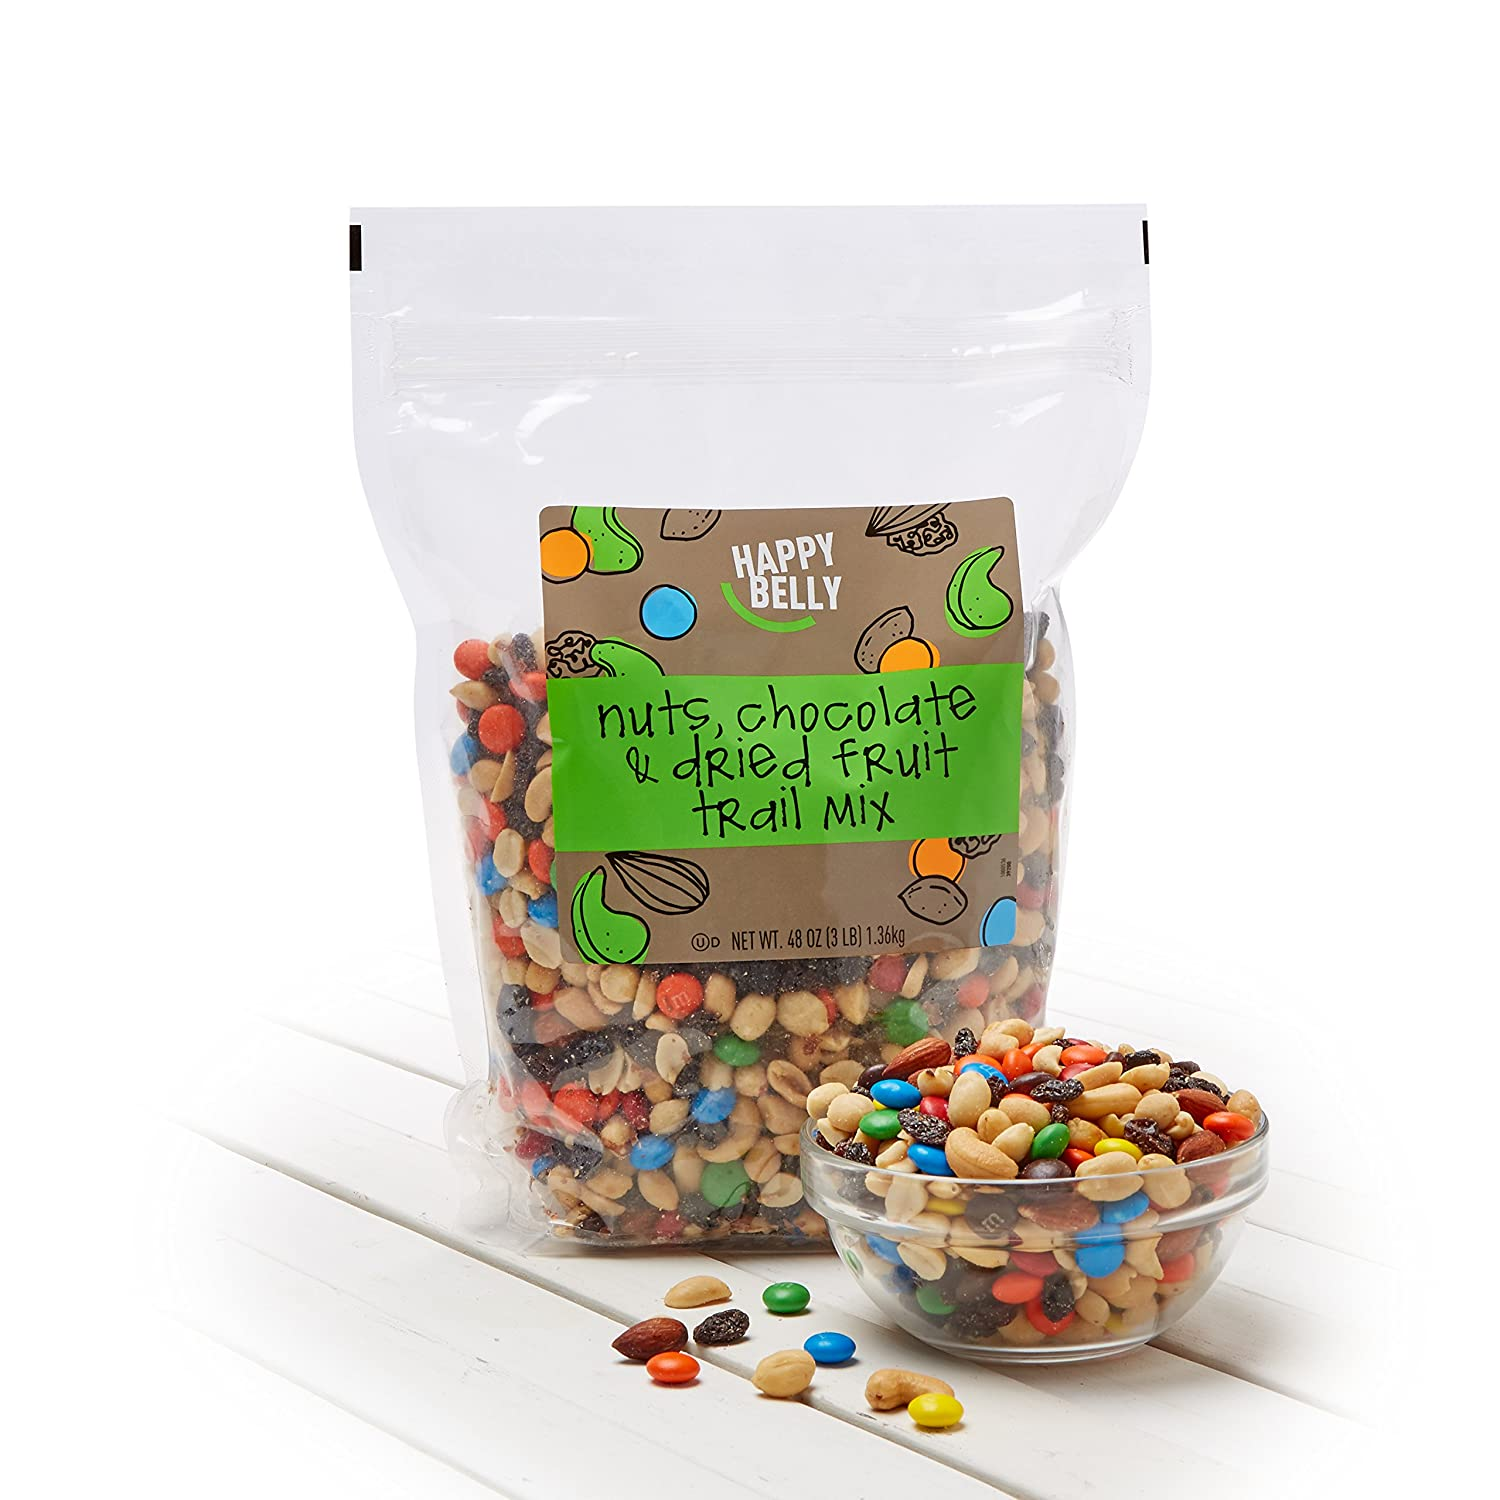 Amazon Brand - Happy Belly Nuts, Chocolate & Dried Fruit Trail Mix, 48 oz